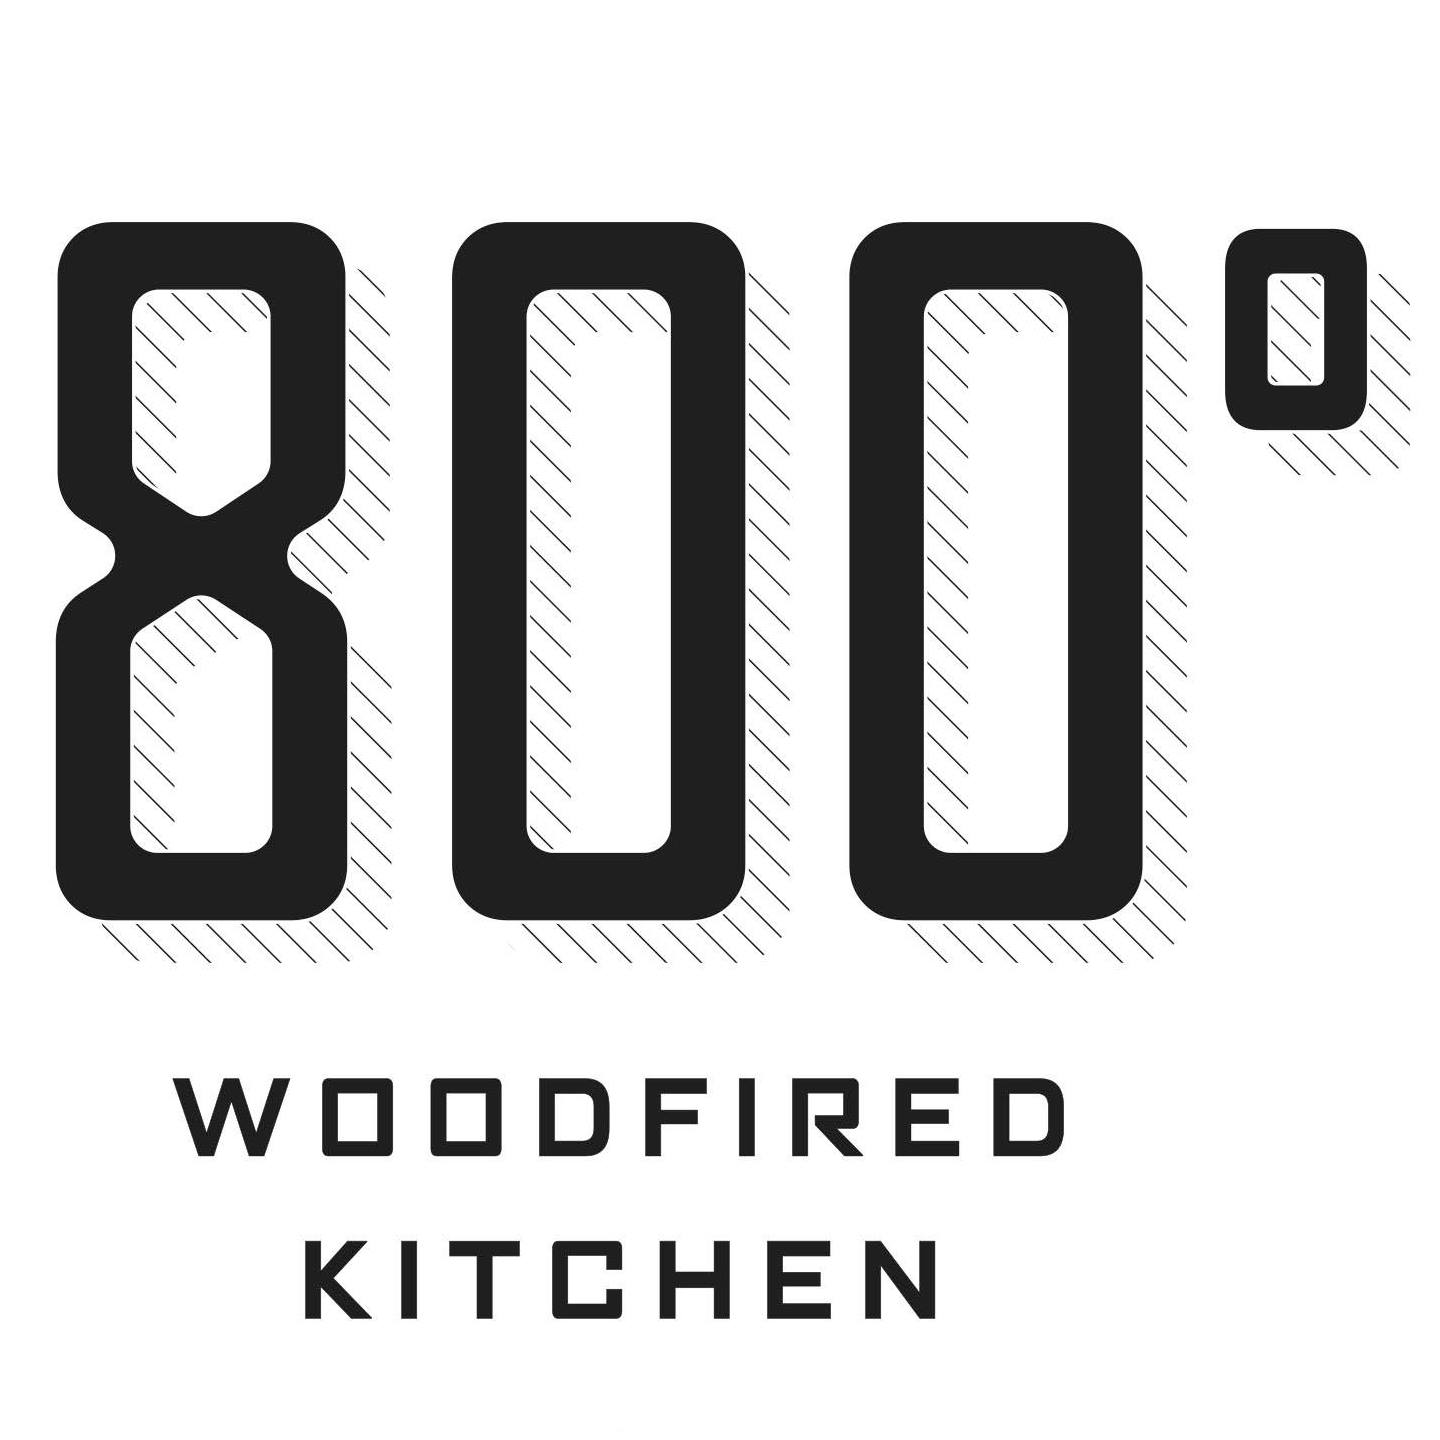 Home | 800 Degrees - Wood Fired Kitchen